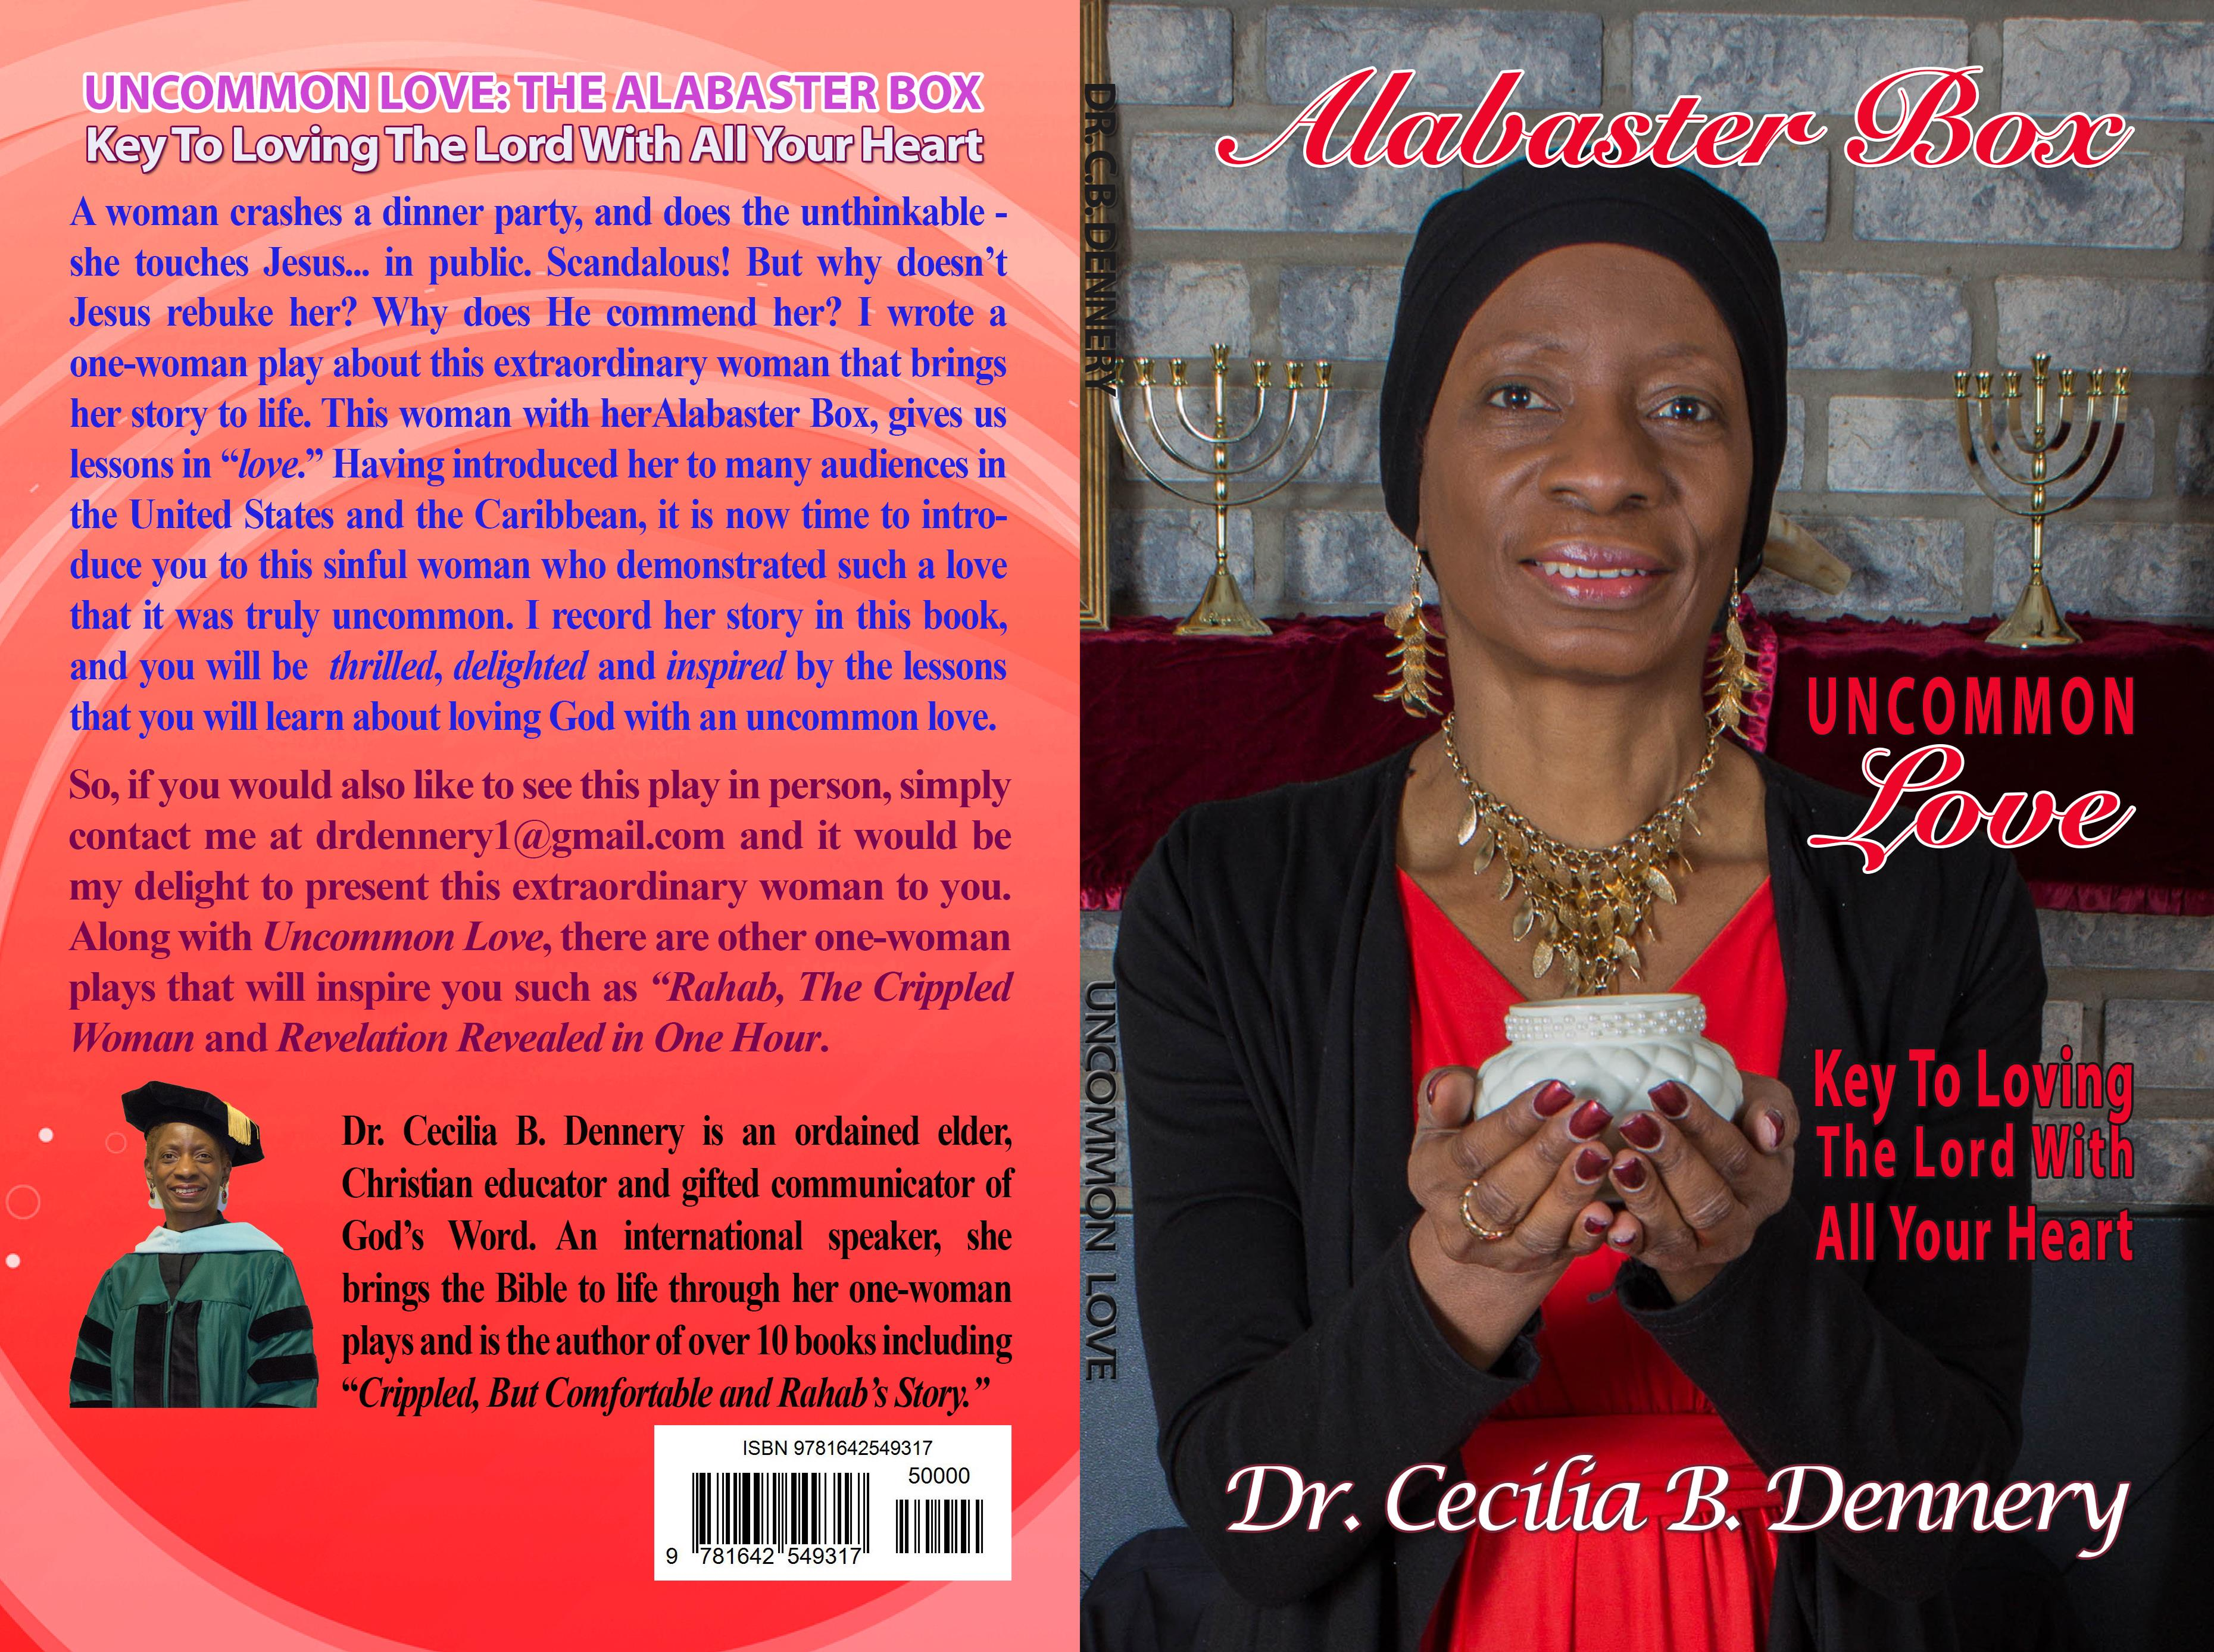 UNCOMMON LOVE: The Woman With the Alabaster Box cover image